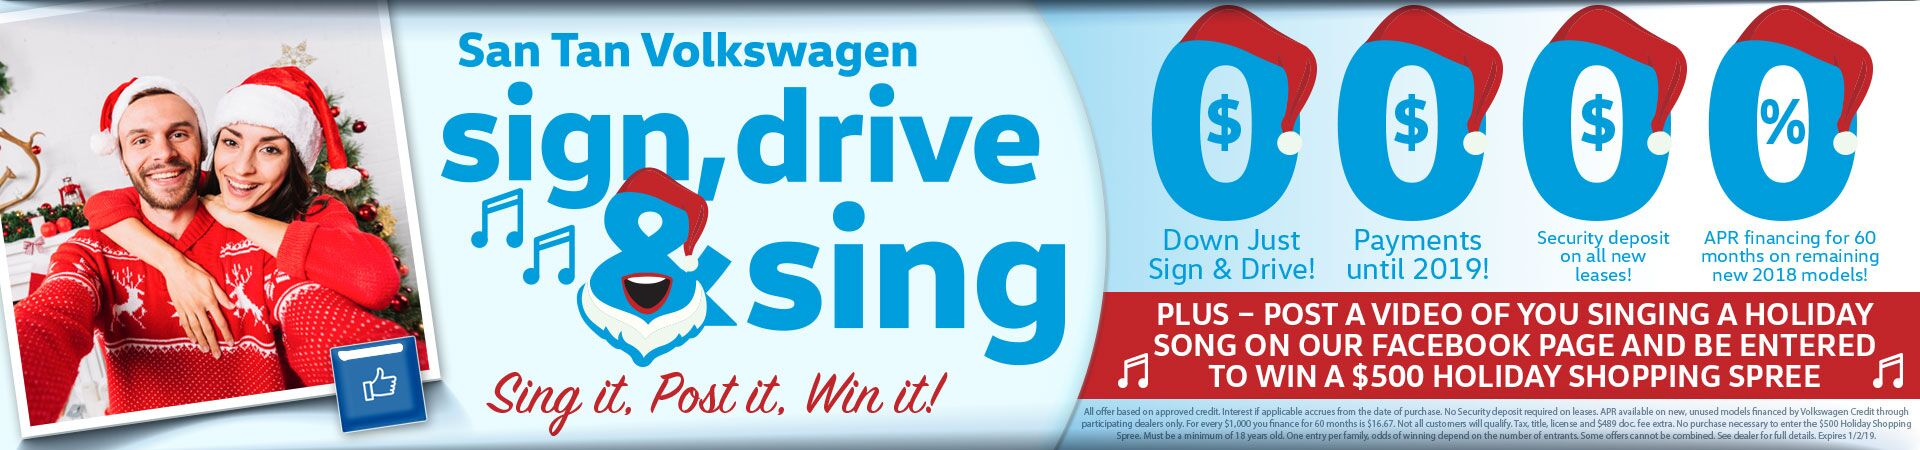 Sign Drive & Sing